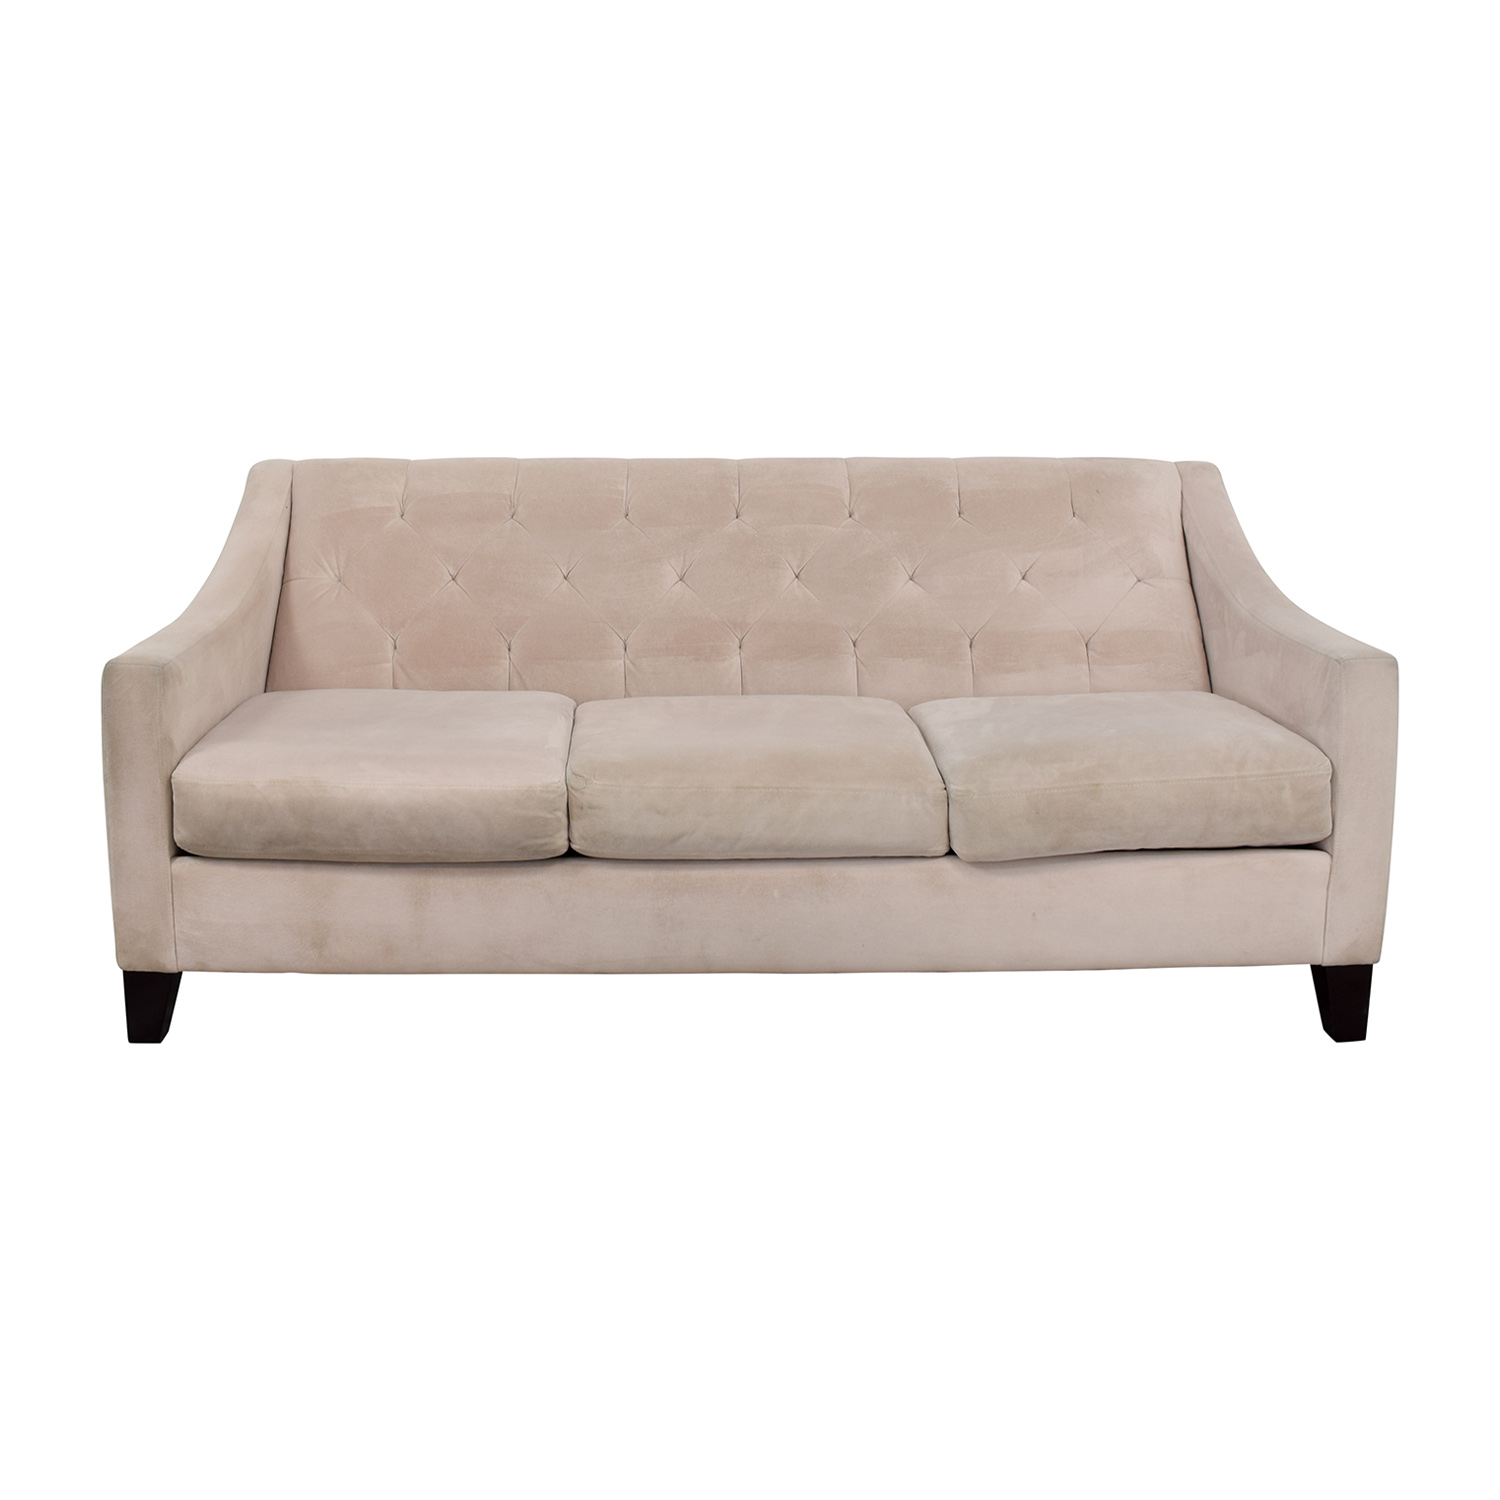 Max Home Three Cushion Corsica Sofa sale